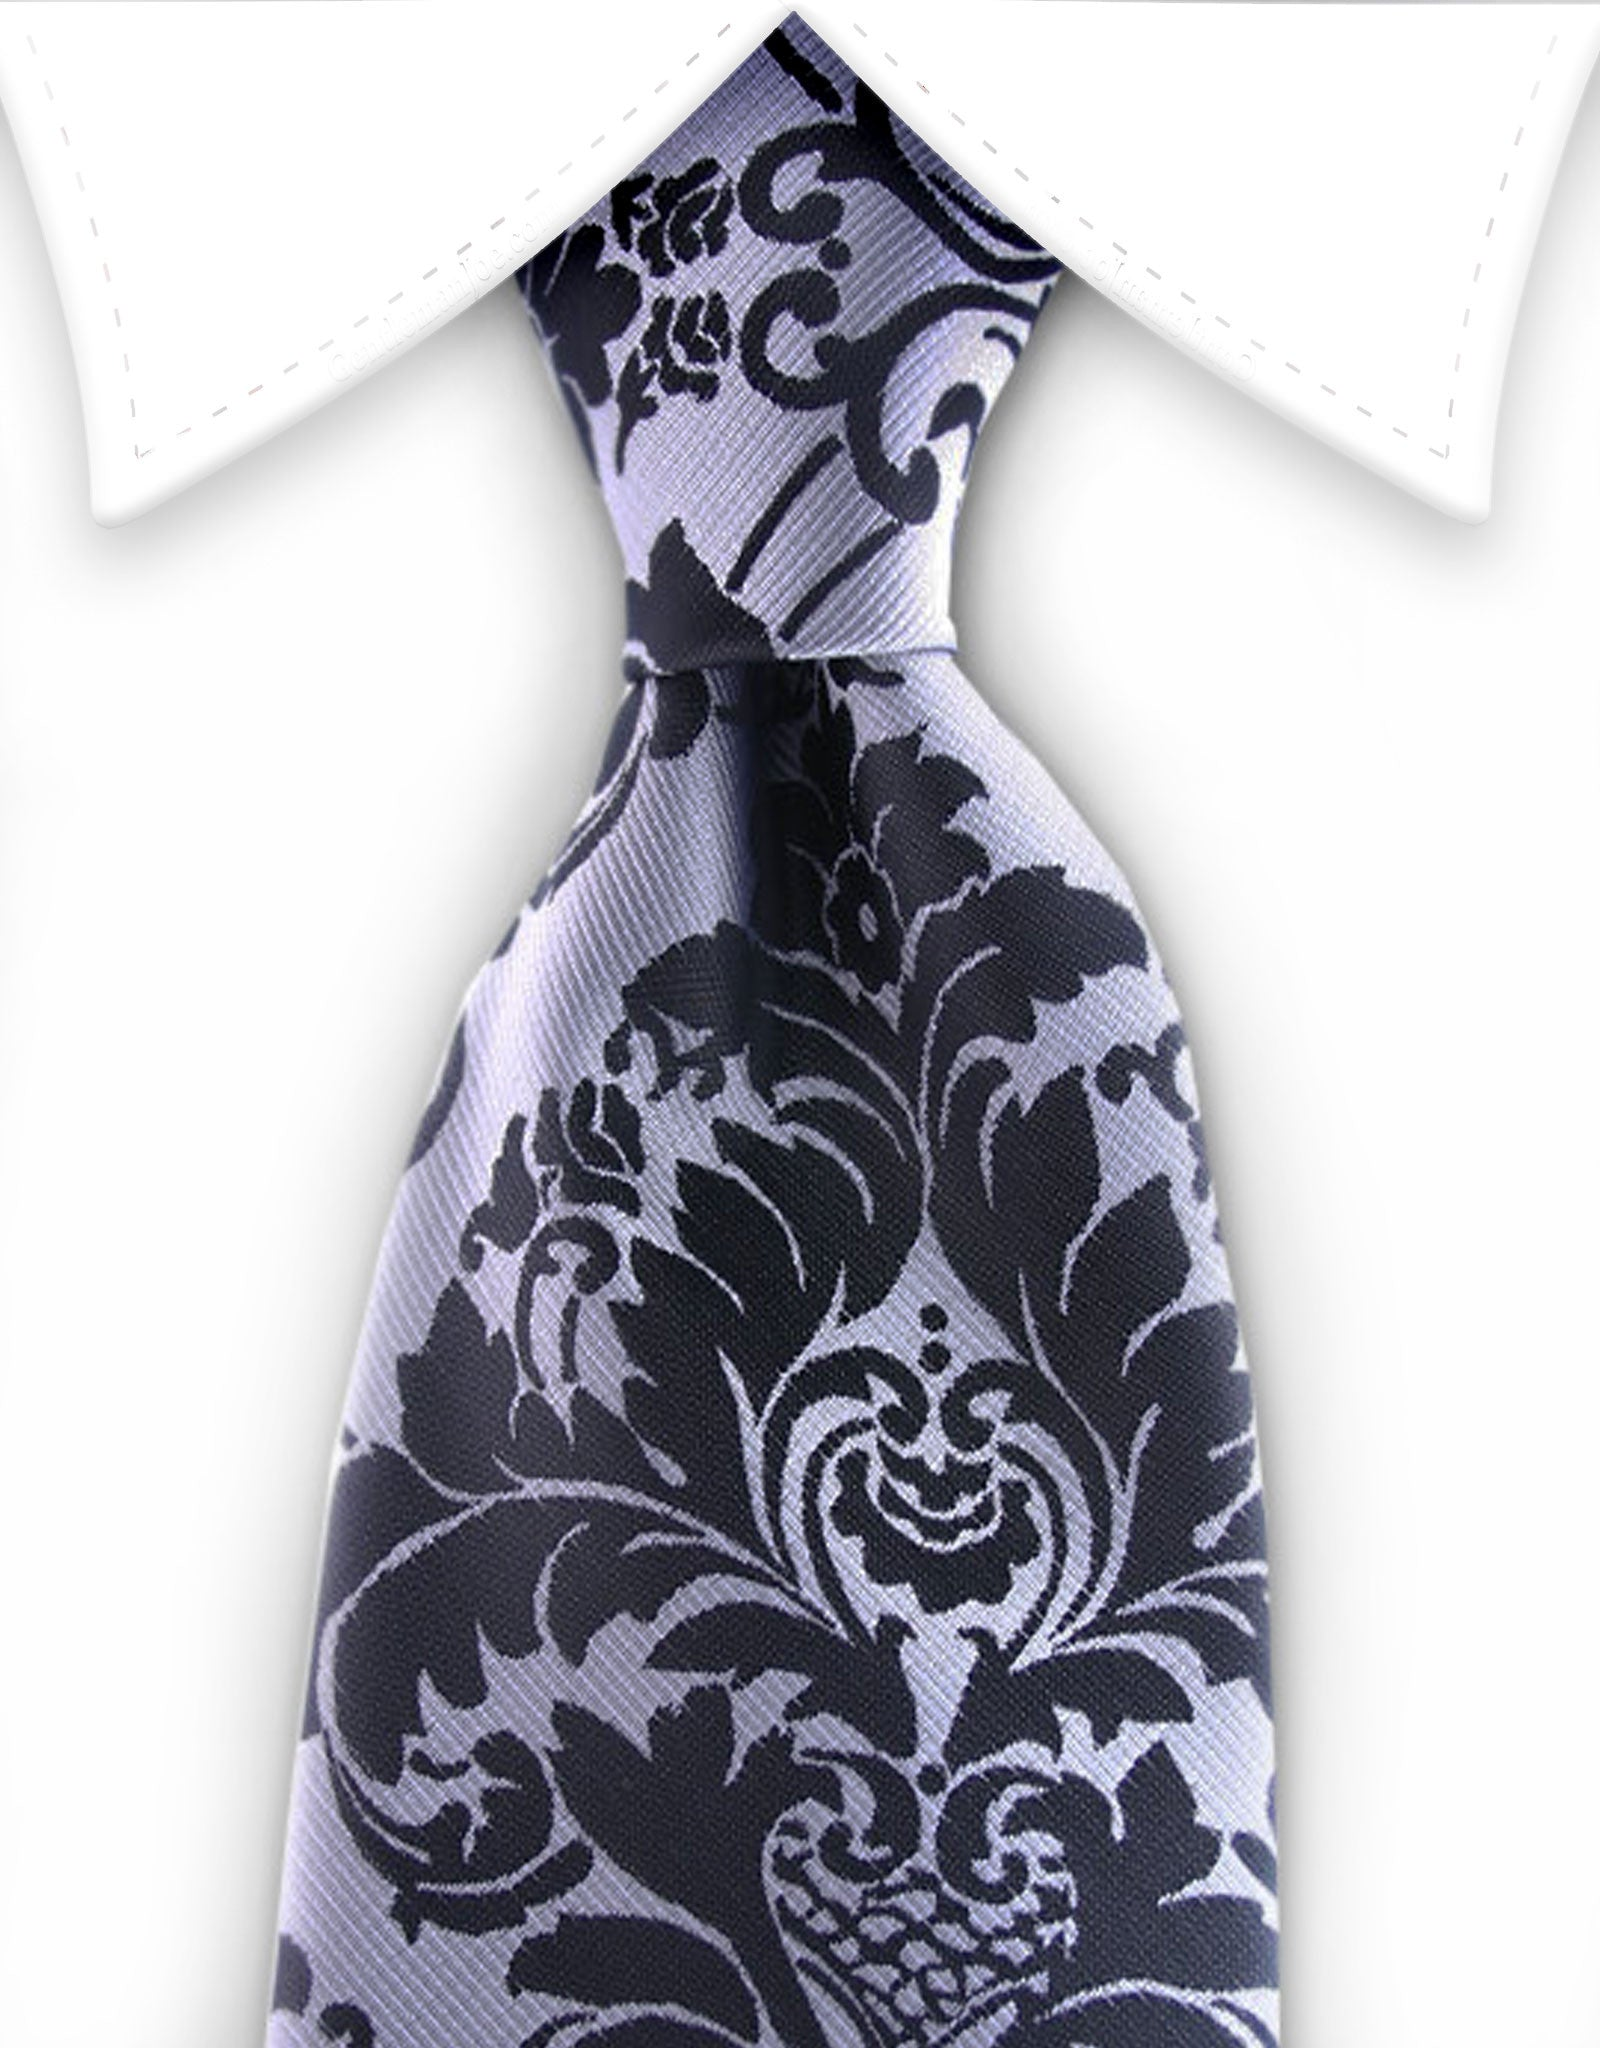 Silver & black tie with vintage floral design